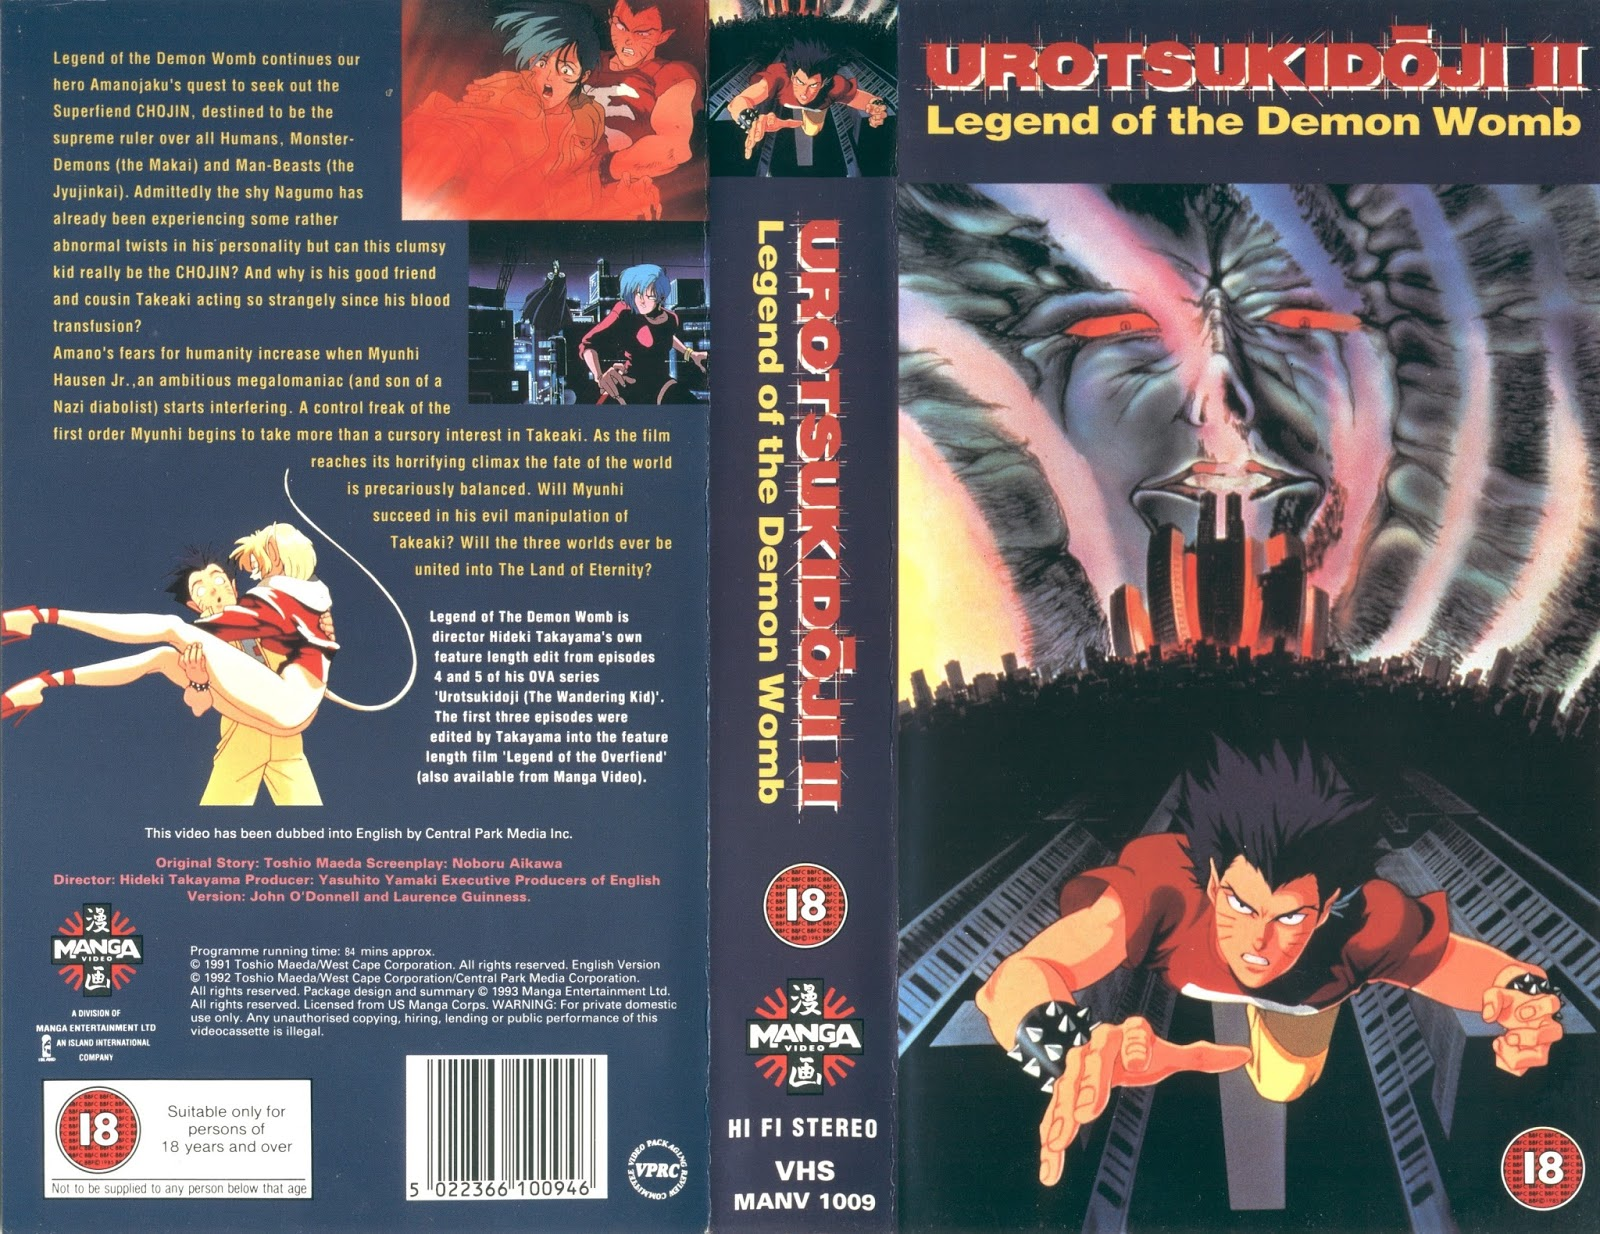 DVD and VHS Covers: Urotsukidoji 2 Legend of the demon womb VHS